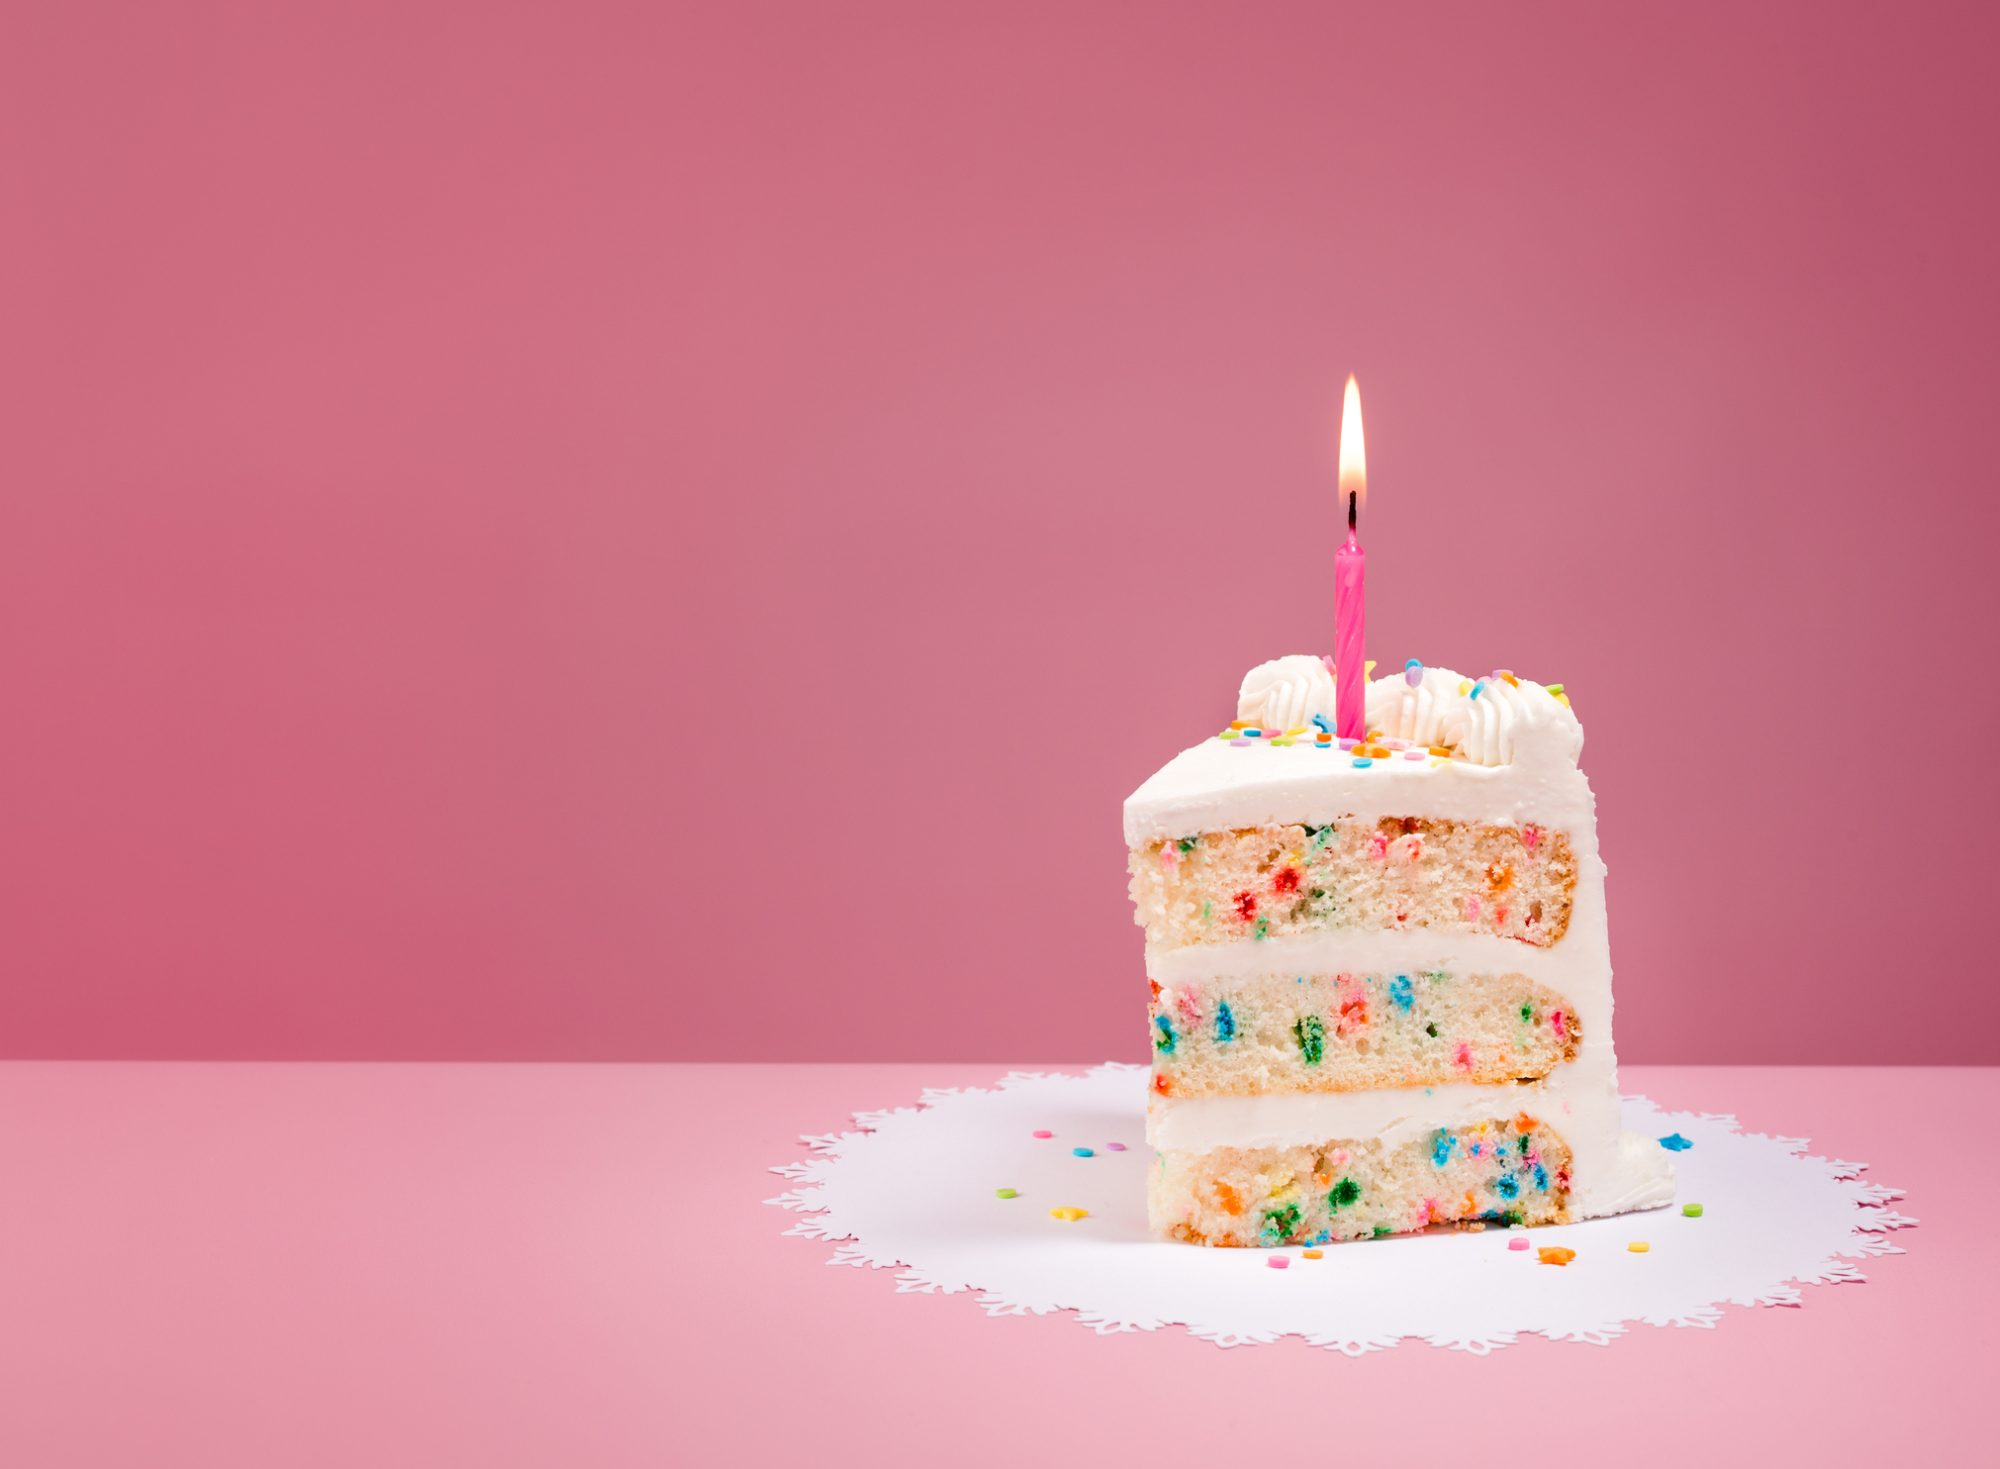 Blowing Out Birthday Candles Could Ruin The Cake